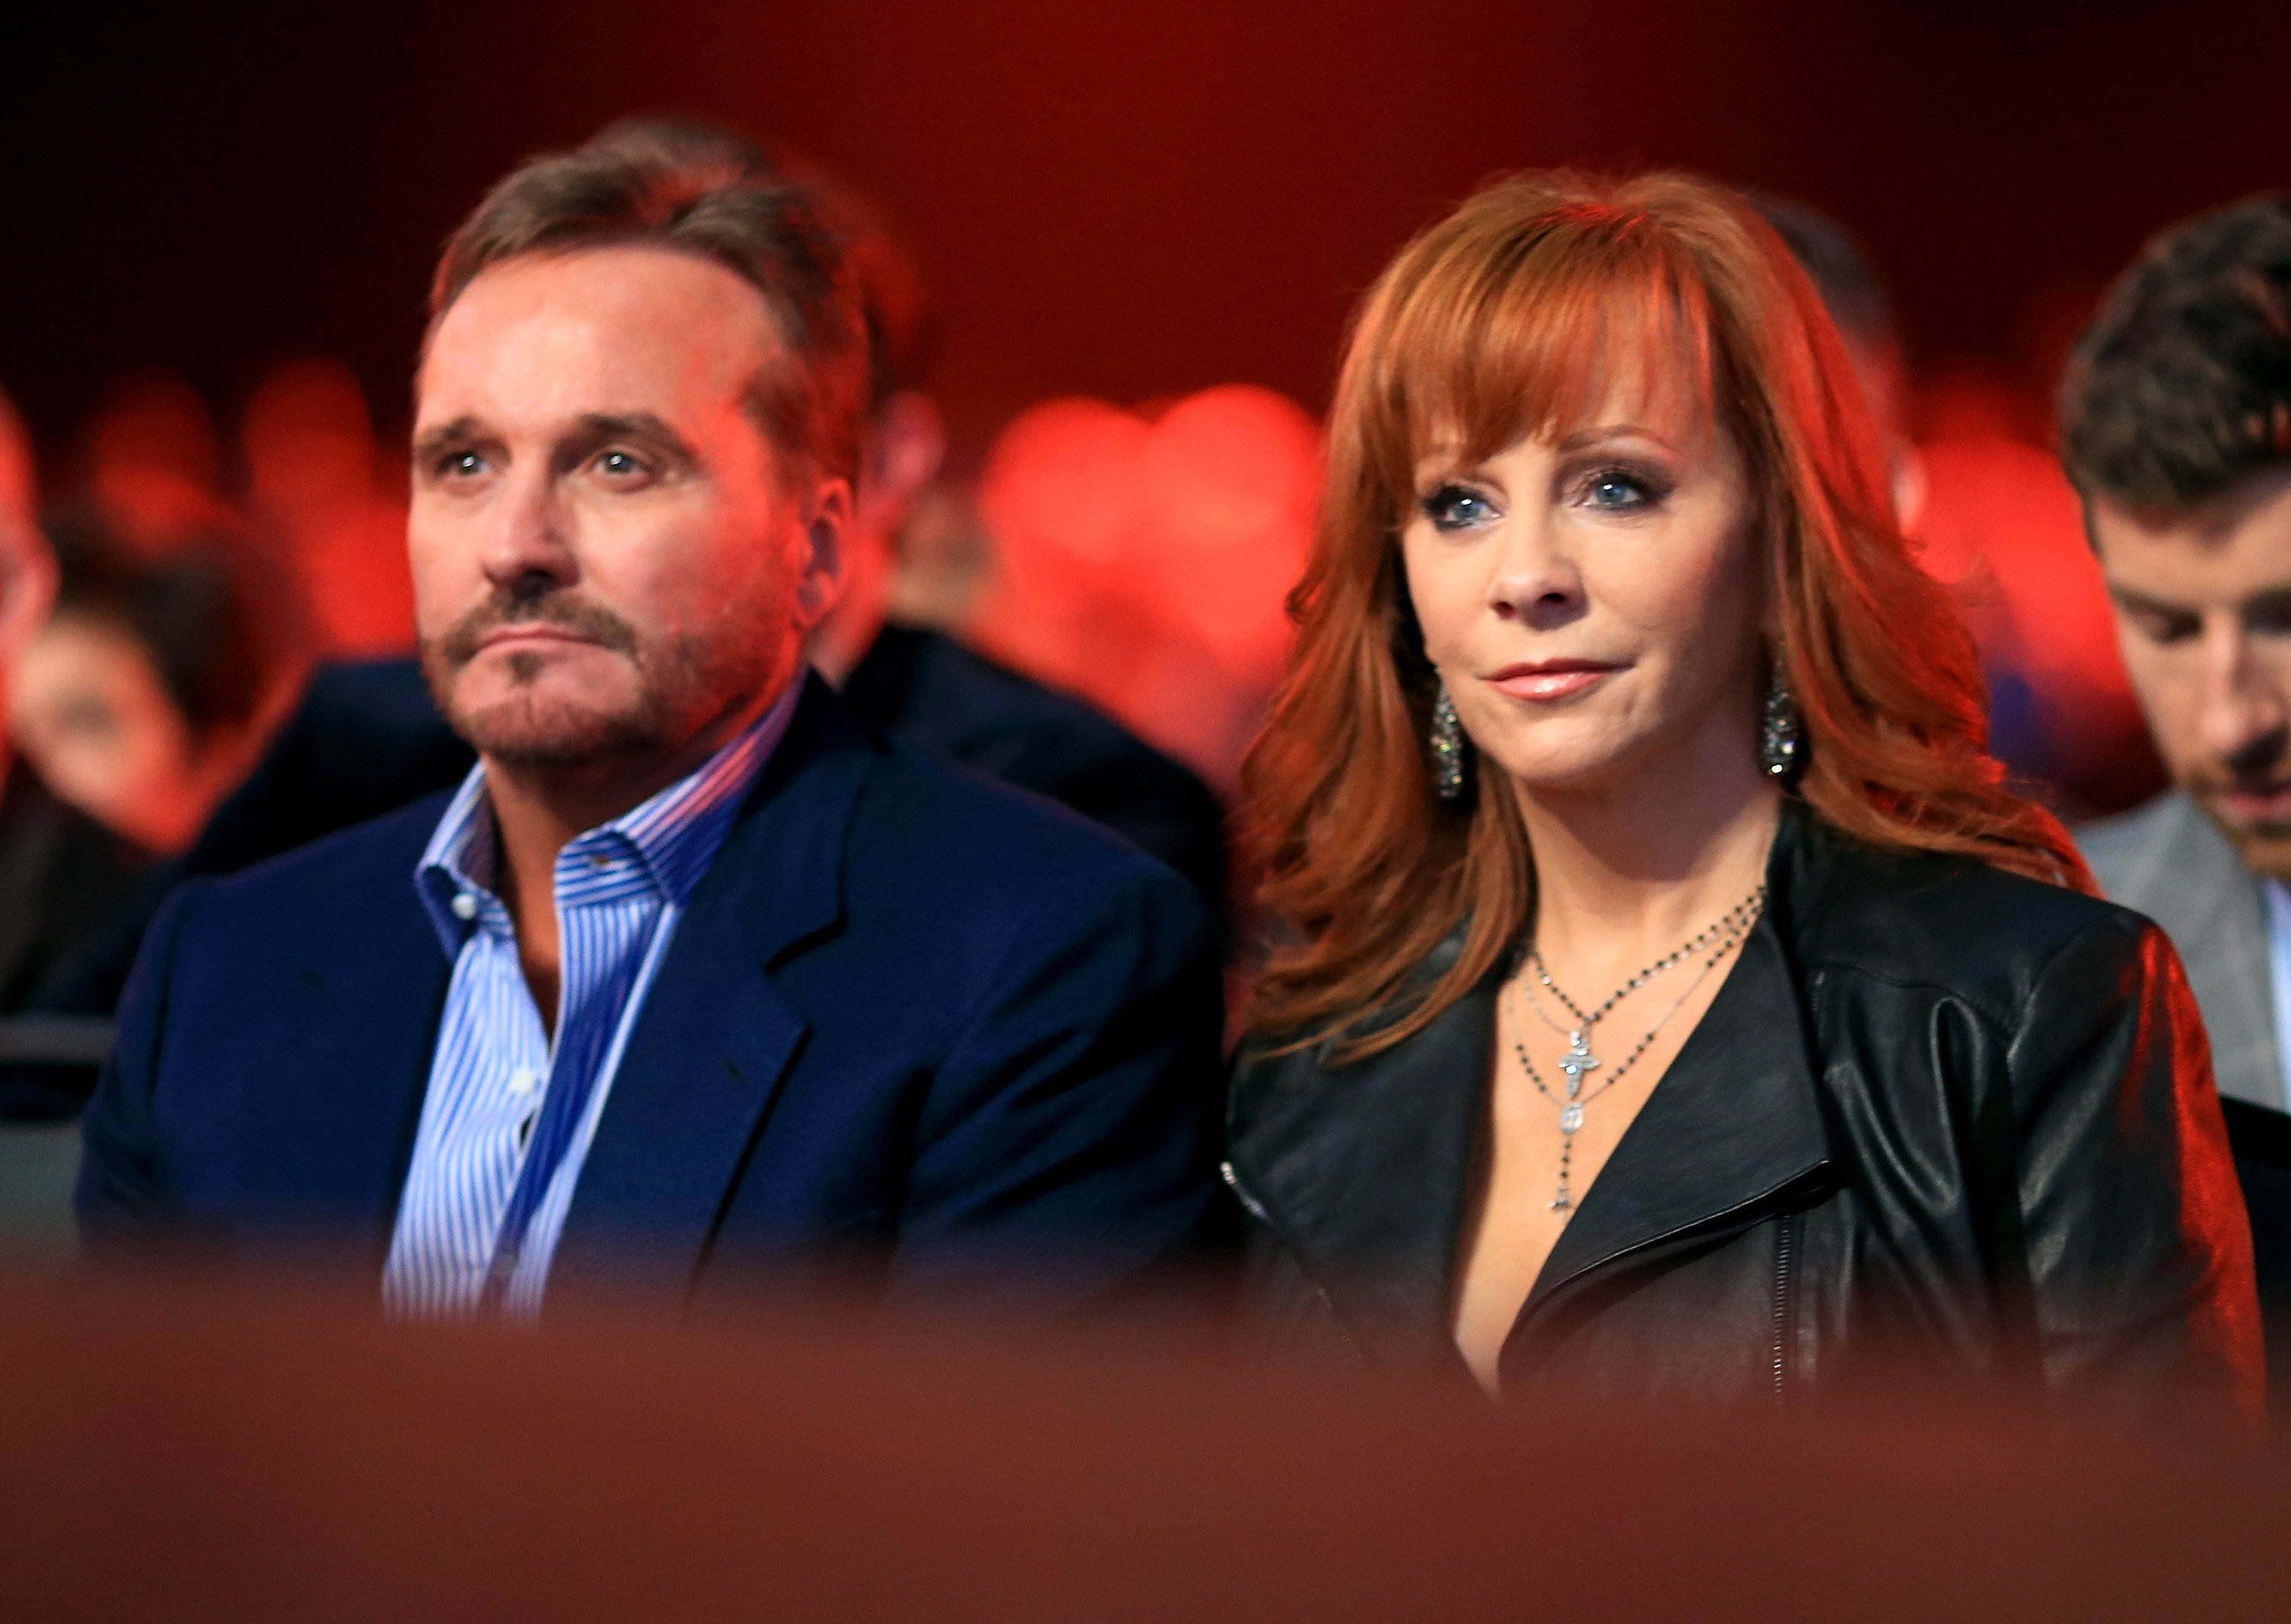 Narvel Blackstock and Reba McEntire at the 2014 American Country Countdown Awards at Music City Center on December 15, 2014  | Photo: GettyImages